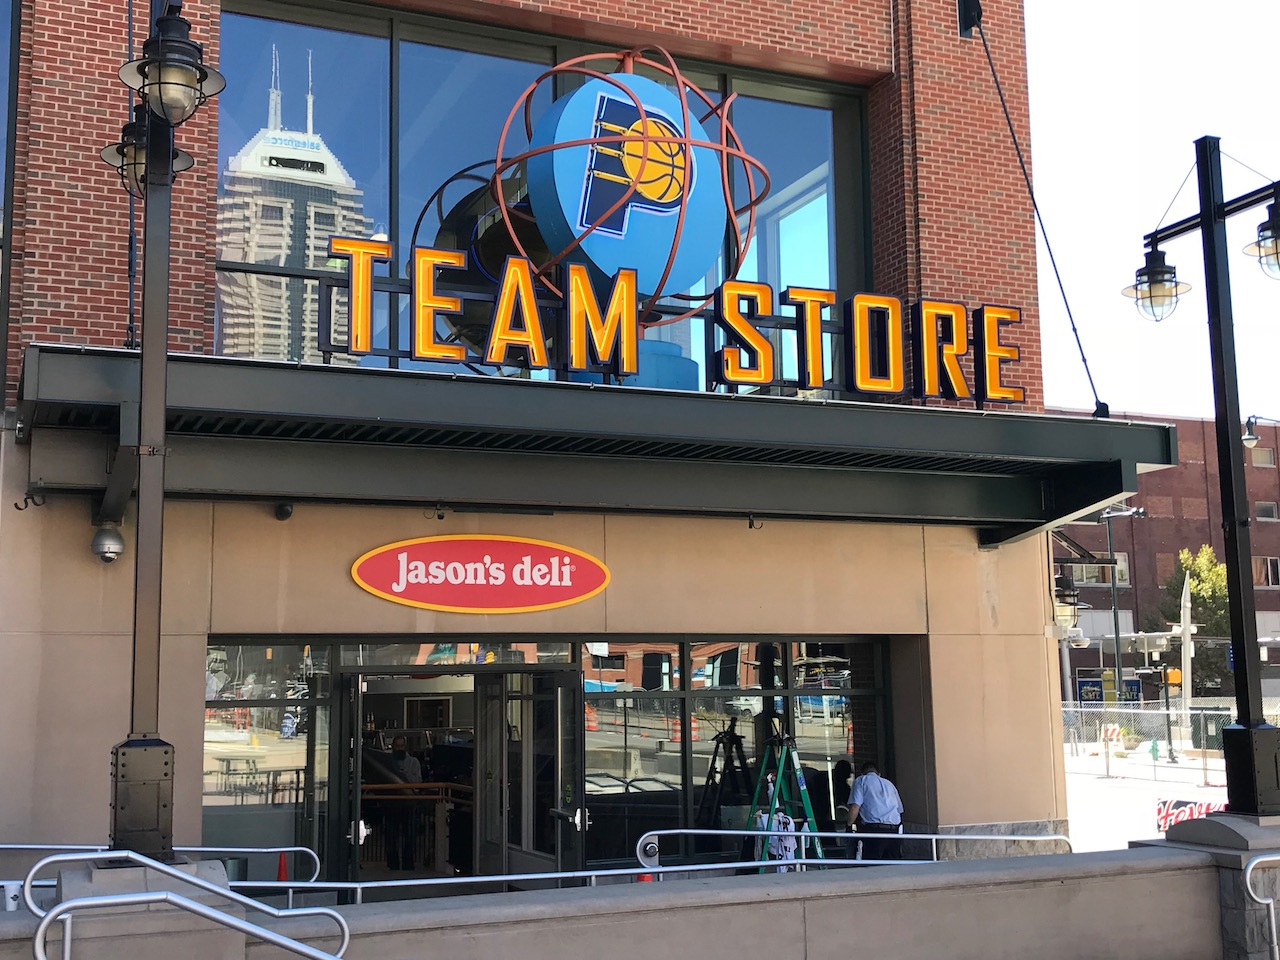 FIRST LOOK: Pacers Team Store reopening on Sept. 29 | Vigilant Sports